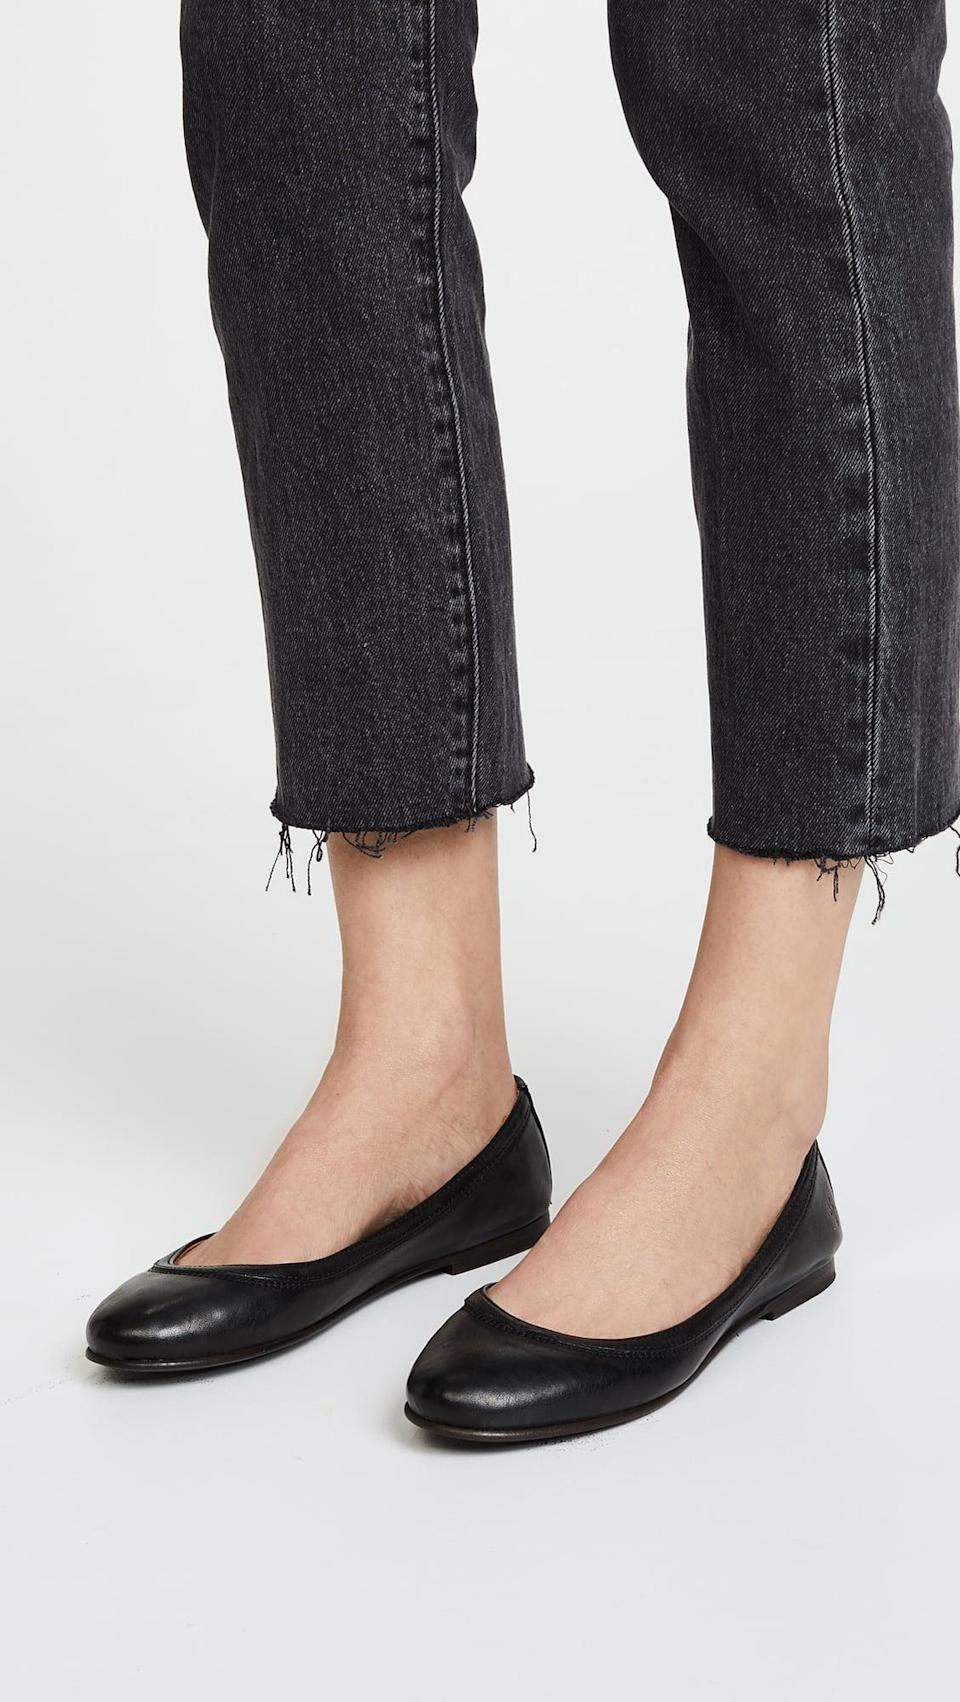 <p>You can't go wrong owning these classic <span>Frye Carson Ballet Flats</span> ($158). They feature a rubber sole to keep your feet cozy.</p>